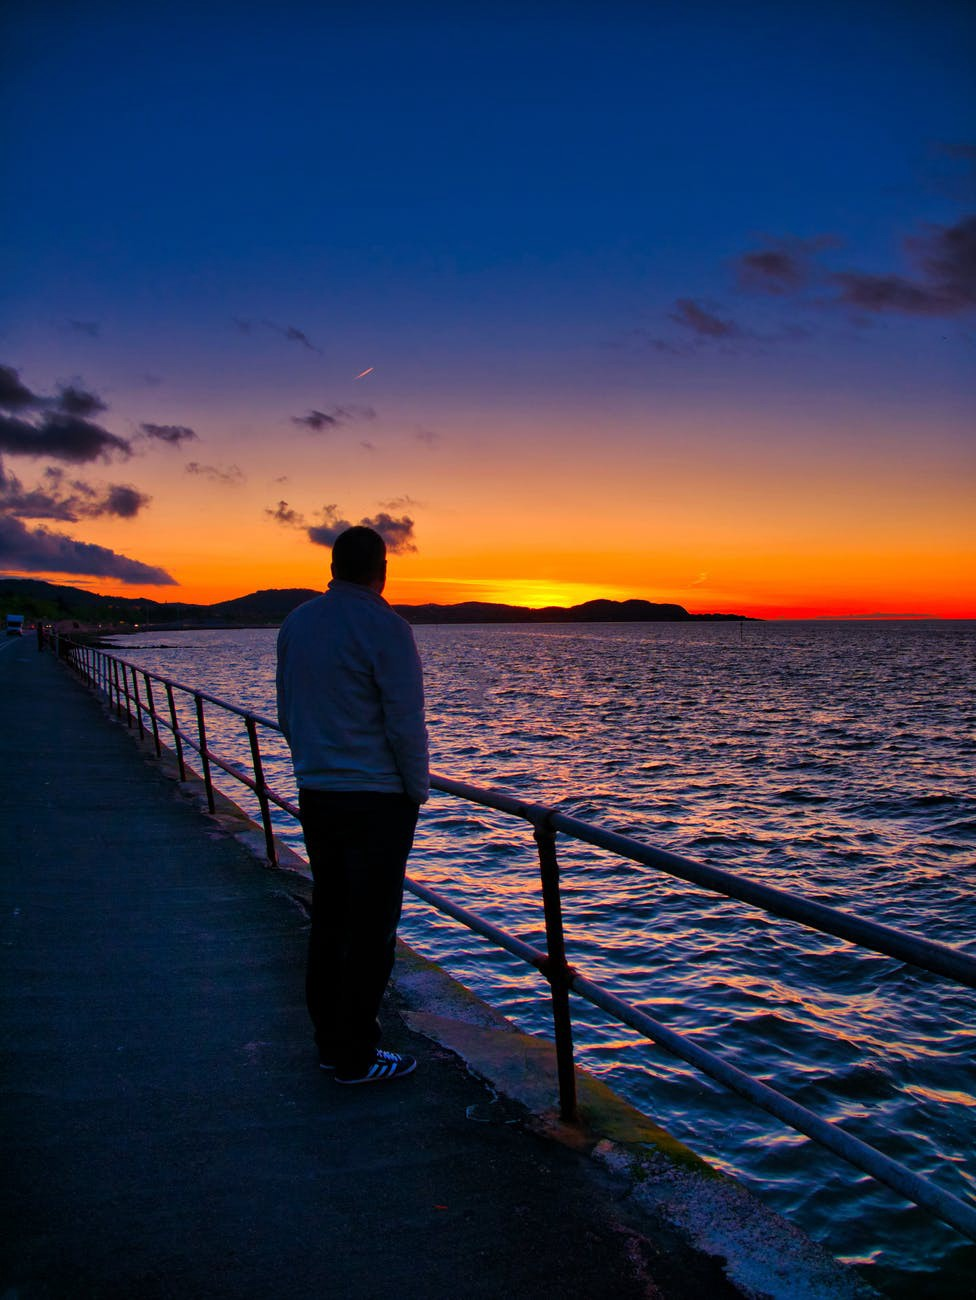 A man is watching the sunset over the sea all by himself.